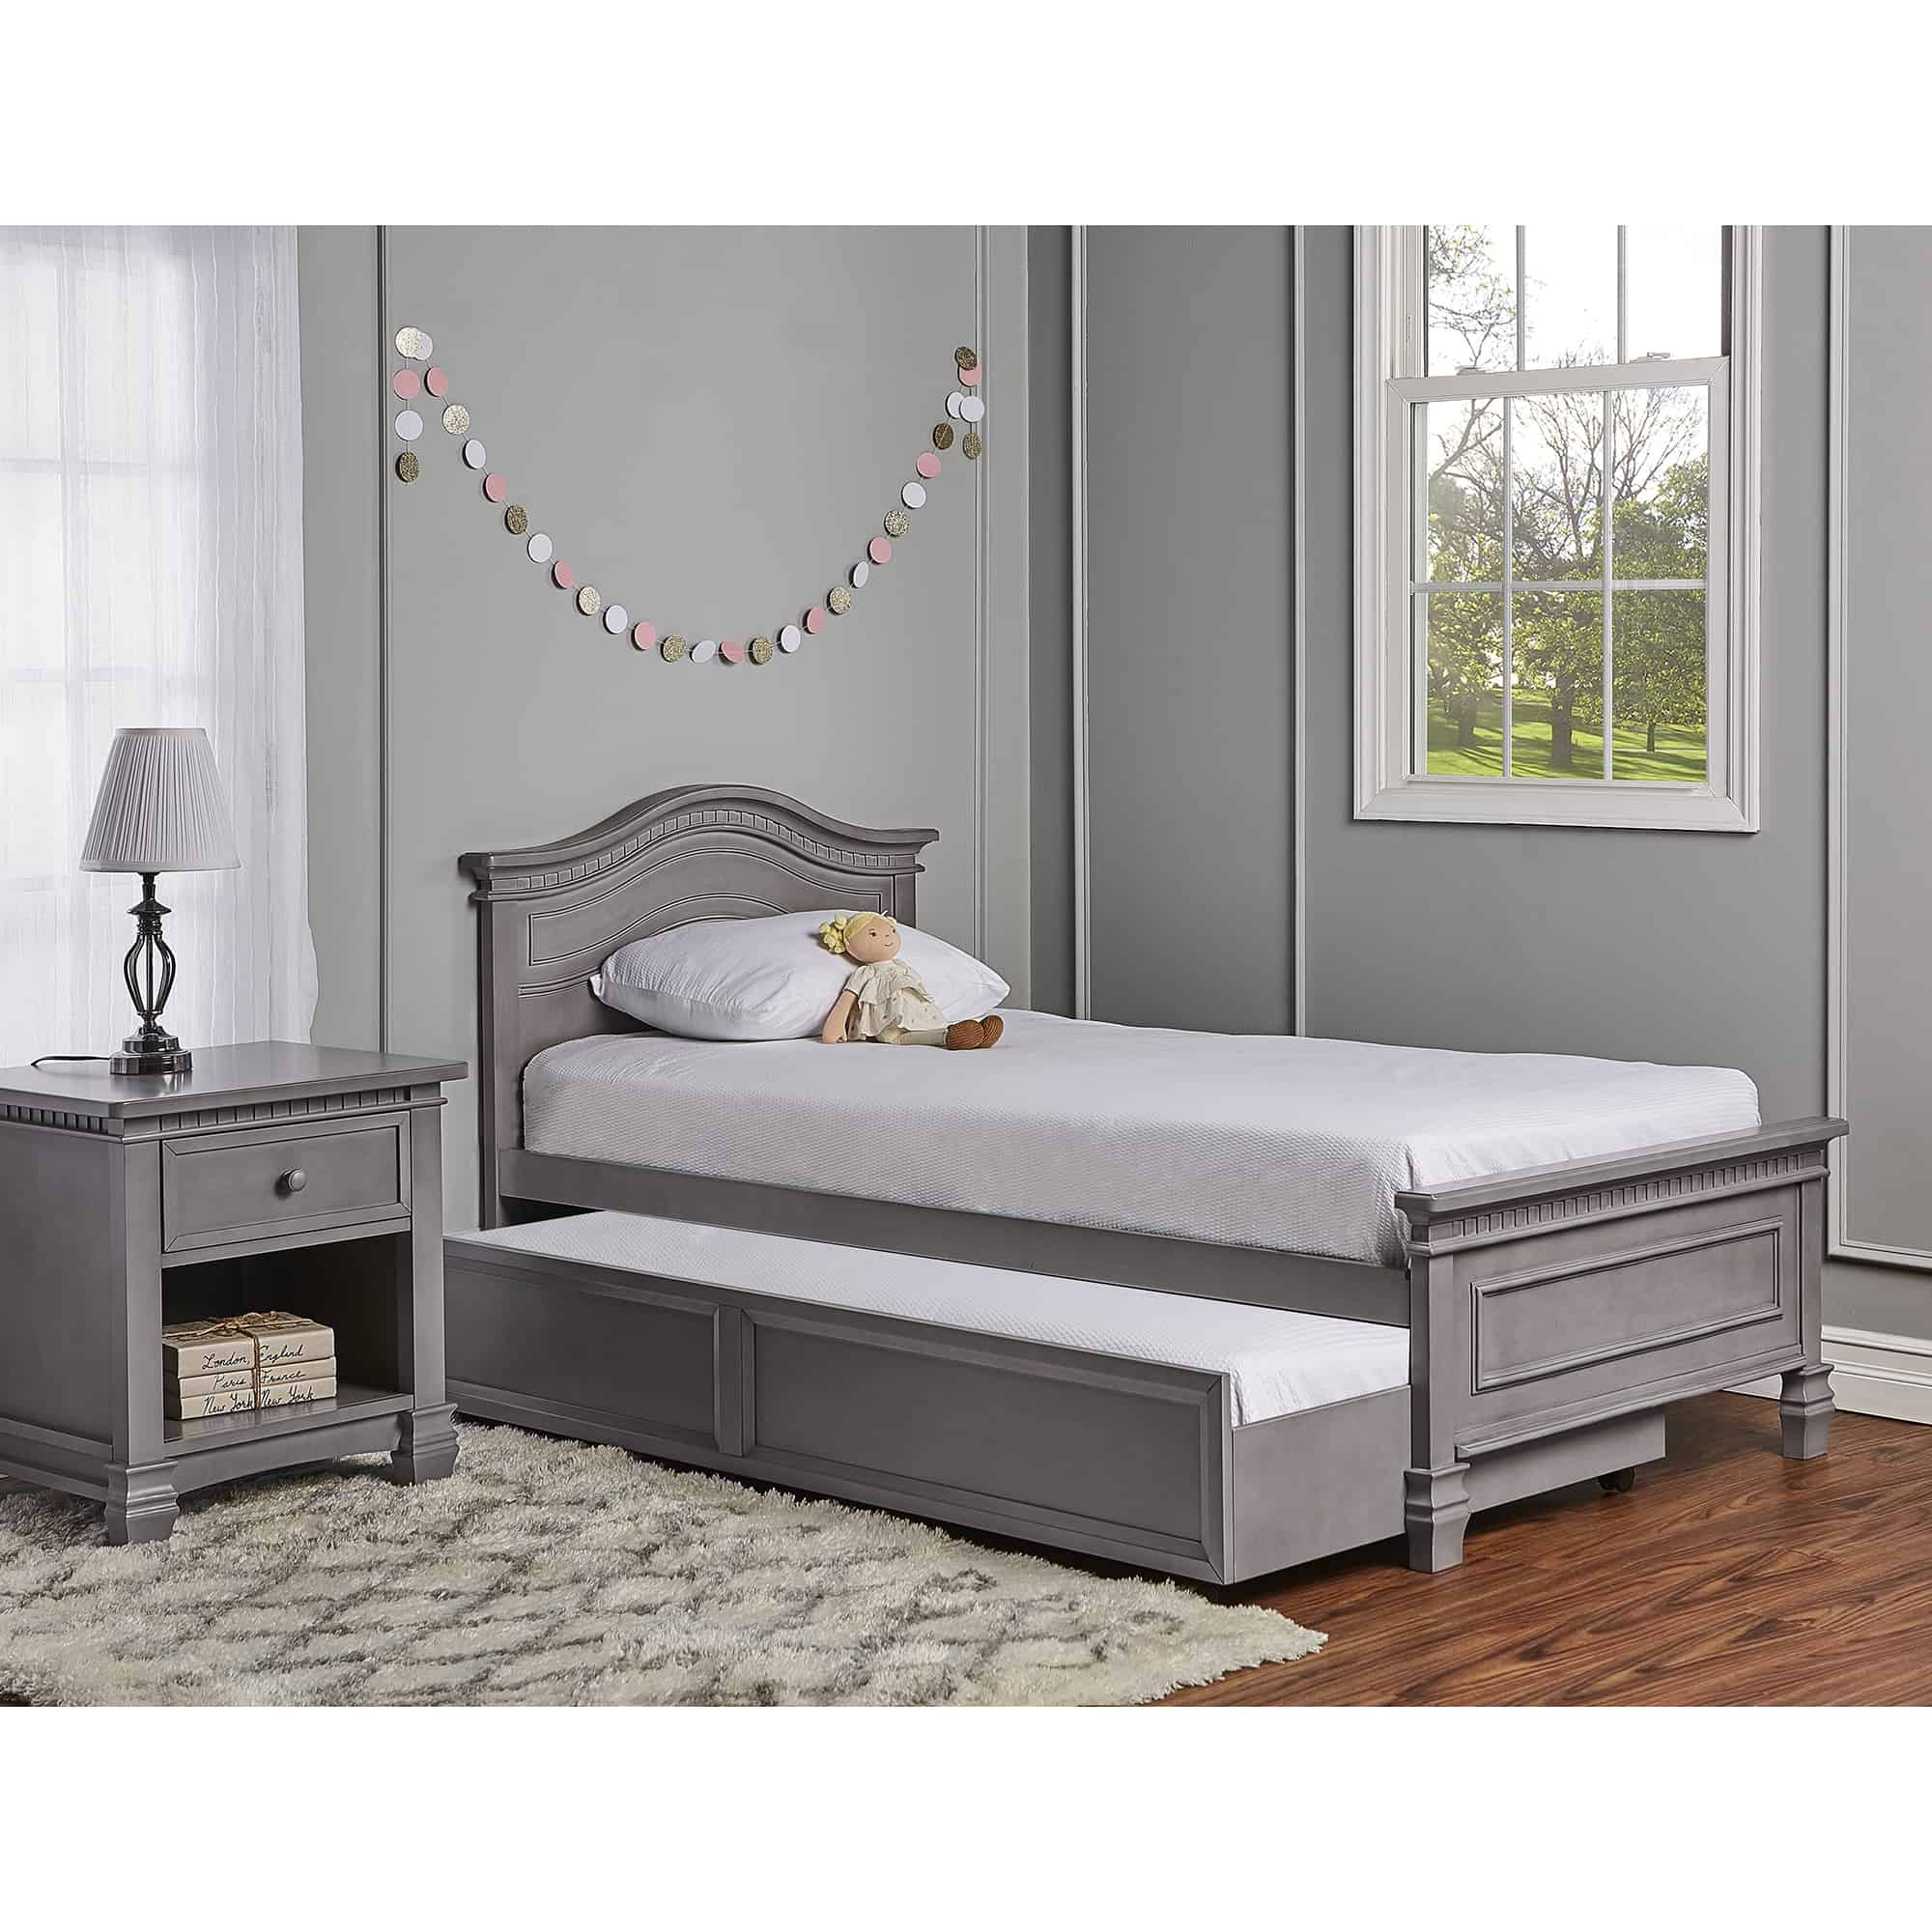 b furniture bedroom traditional sleigh products bed number ybr beds full fsl youth arielle liberty item